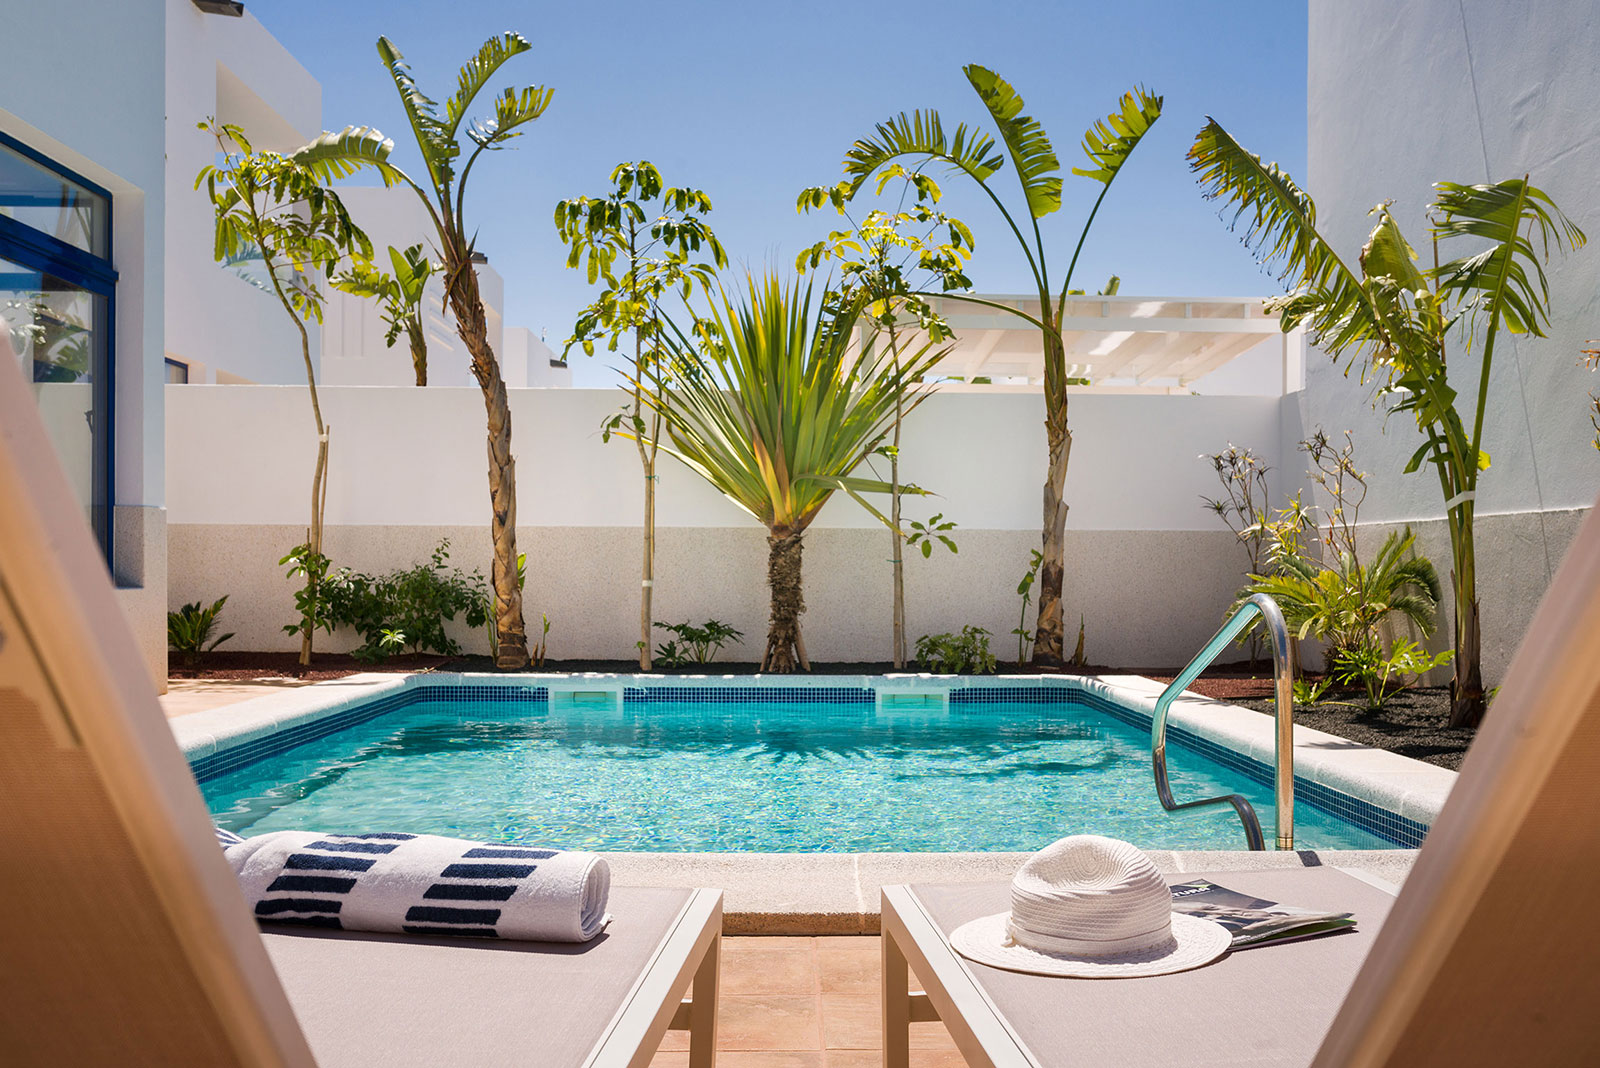 Luxury Holiday Villa With Pool Lanzarote Luxury Villas With Private Pools In Playa Blanca Marina